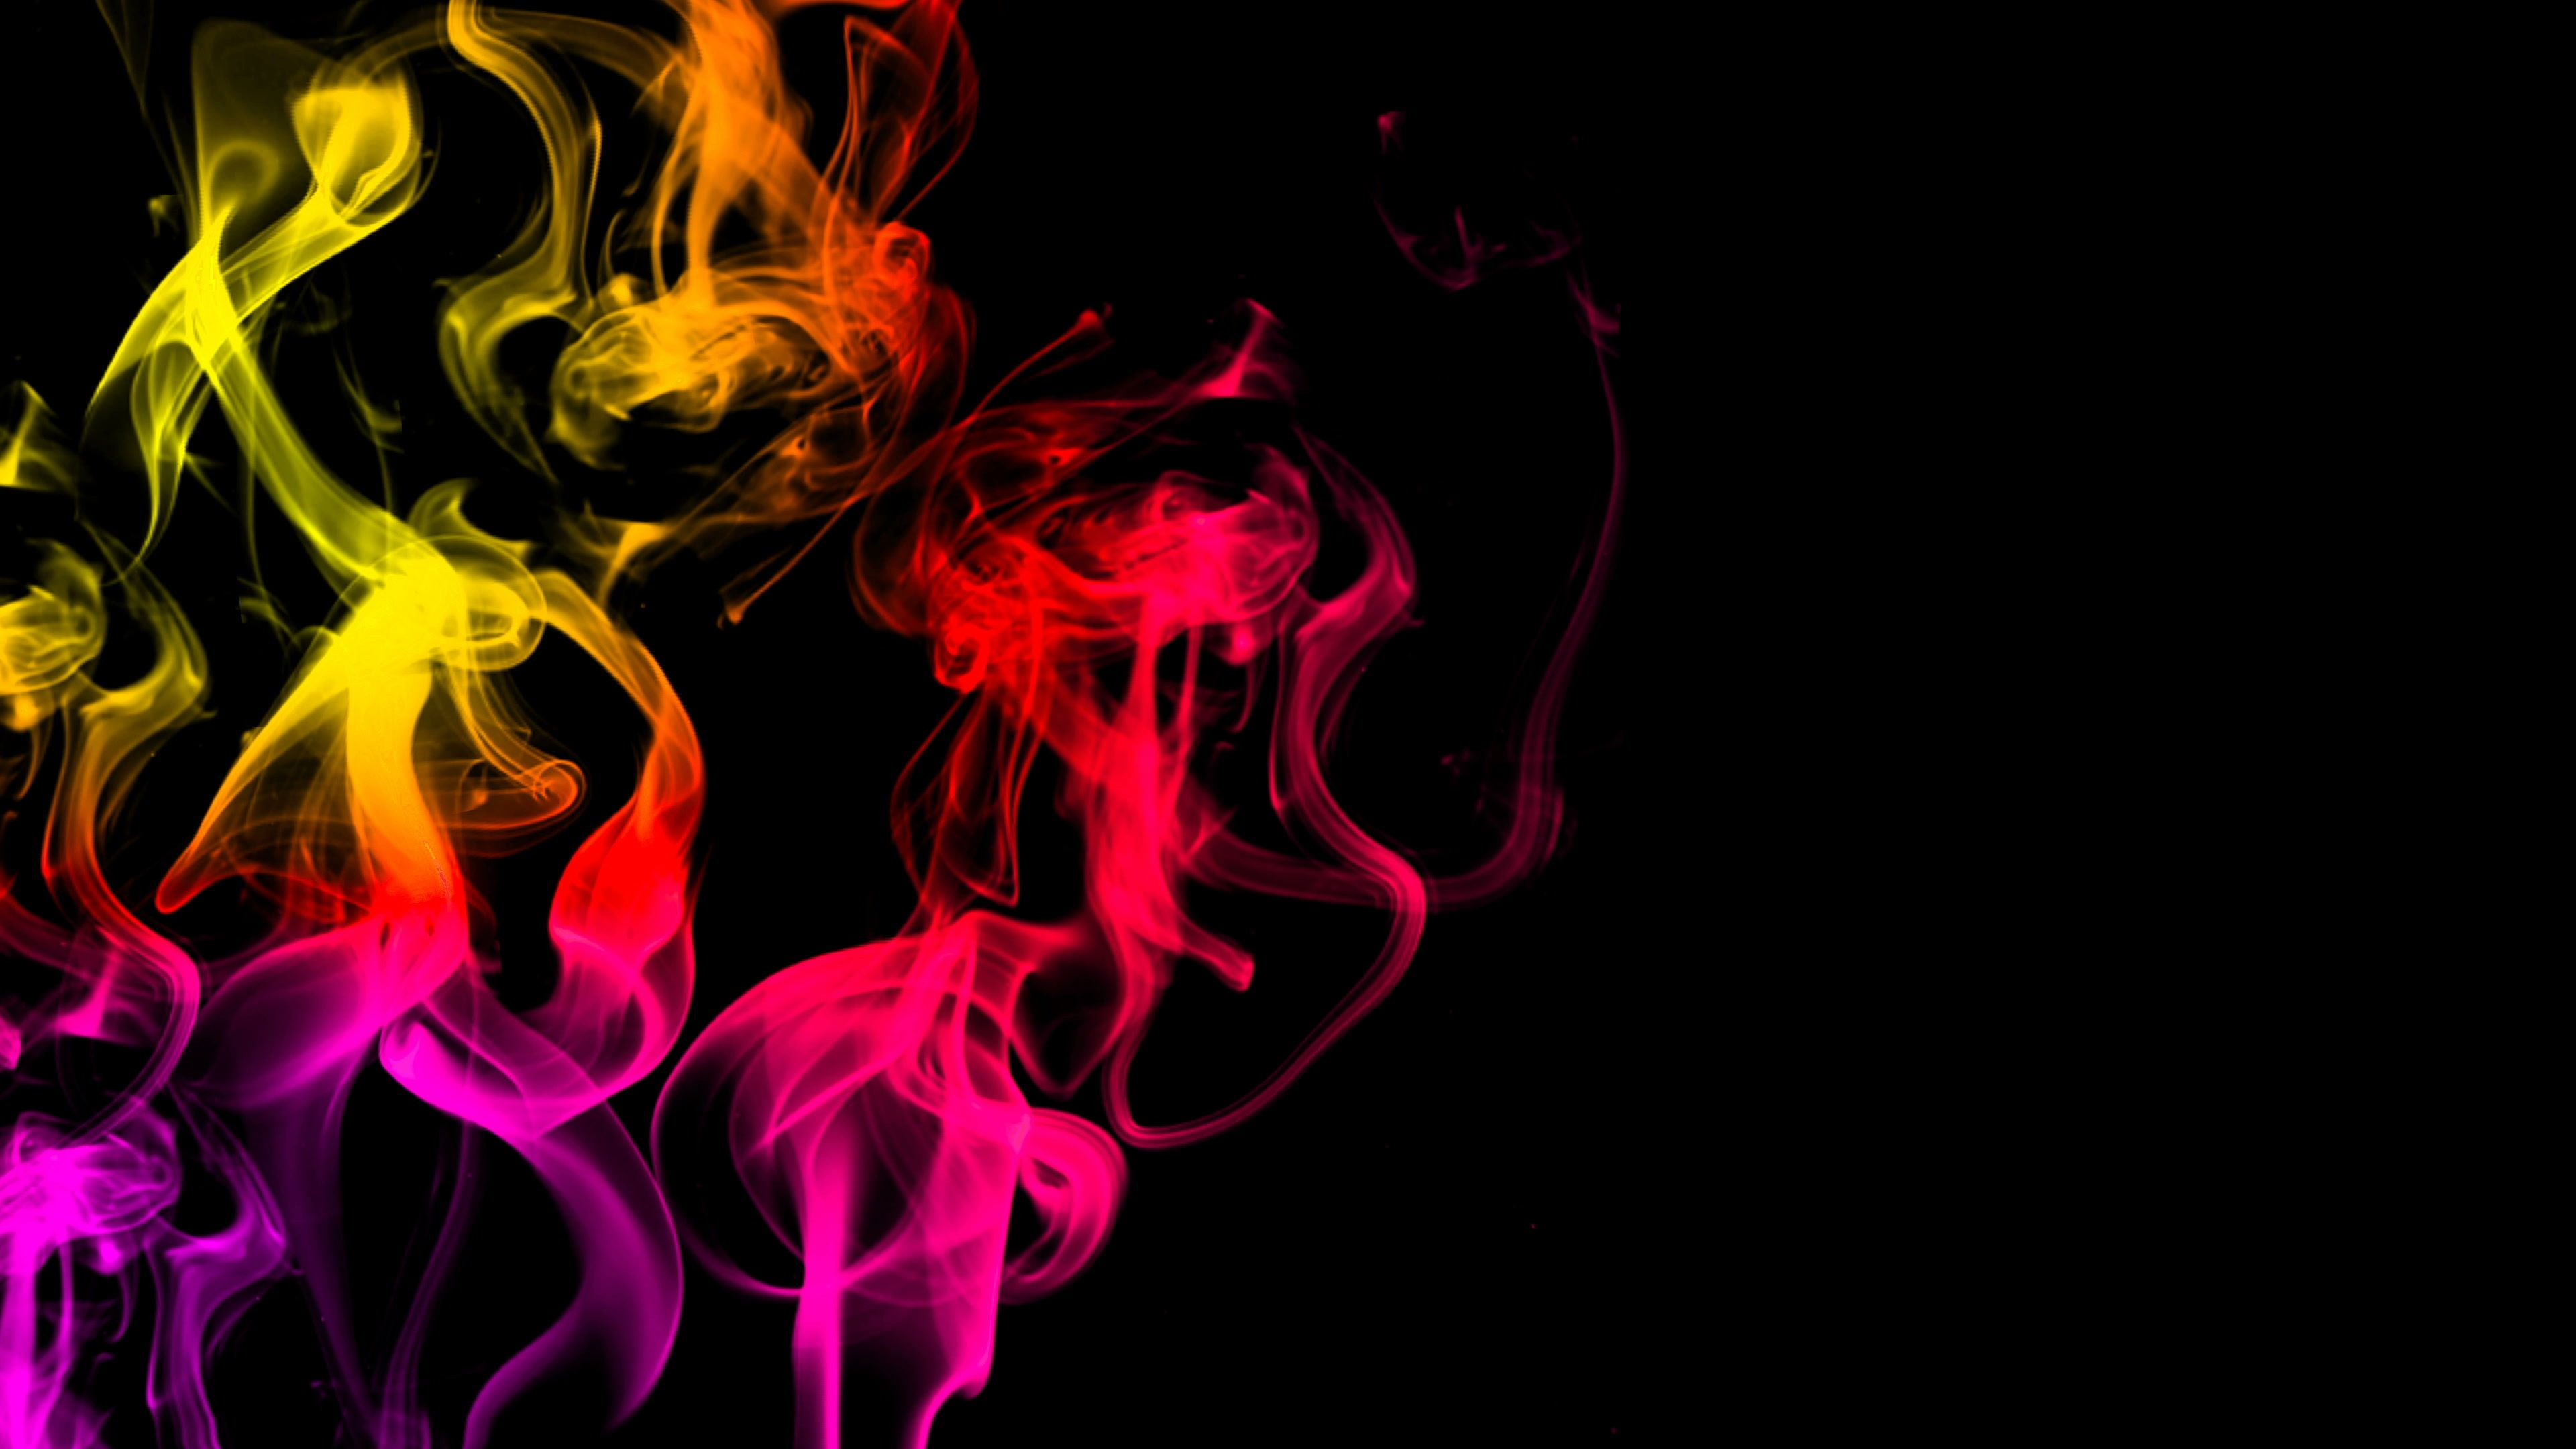 Cg Animation Of Colorful Smoke On A Black Background Juicy And Fresh Color 3d Stock Footage Smoke Black Colorful Cg Colored Smoke Black Backgrounds Color